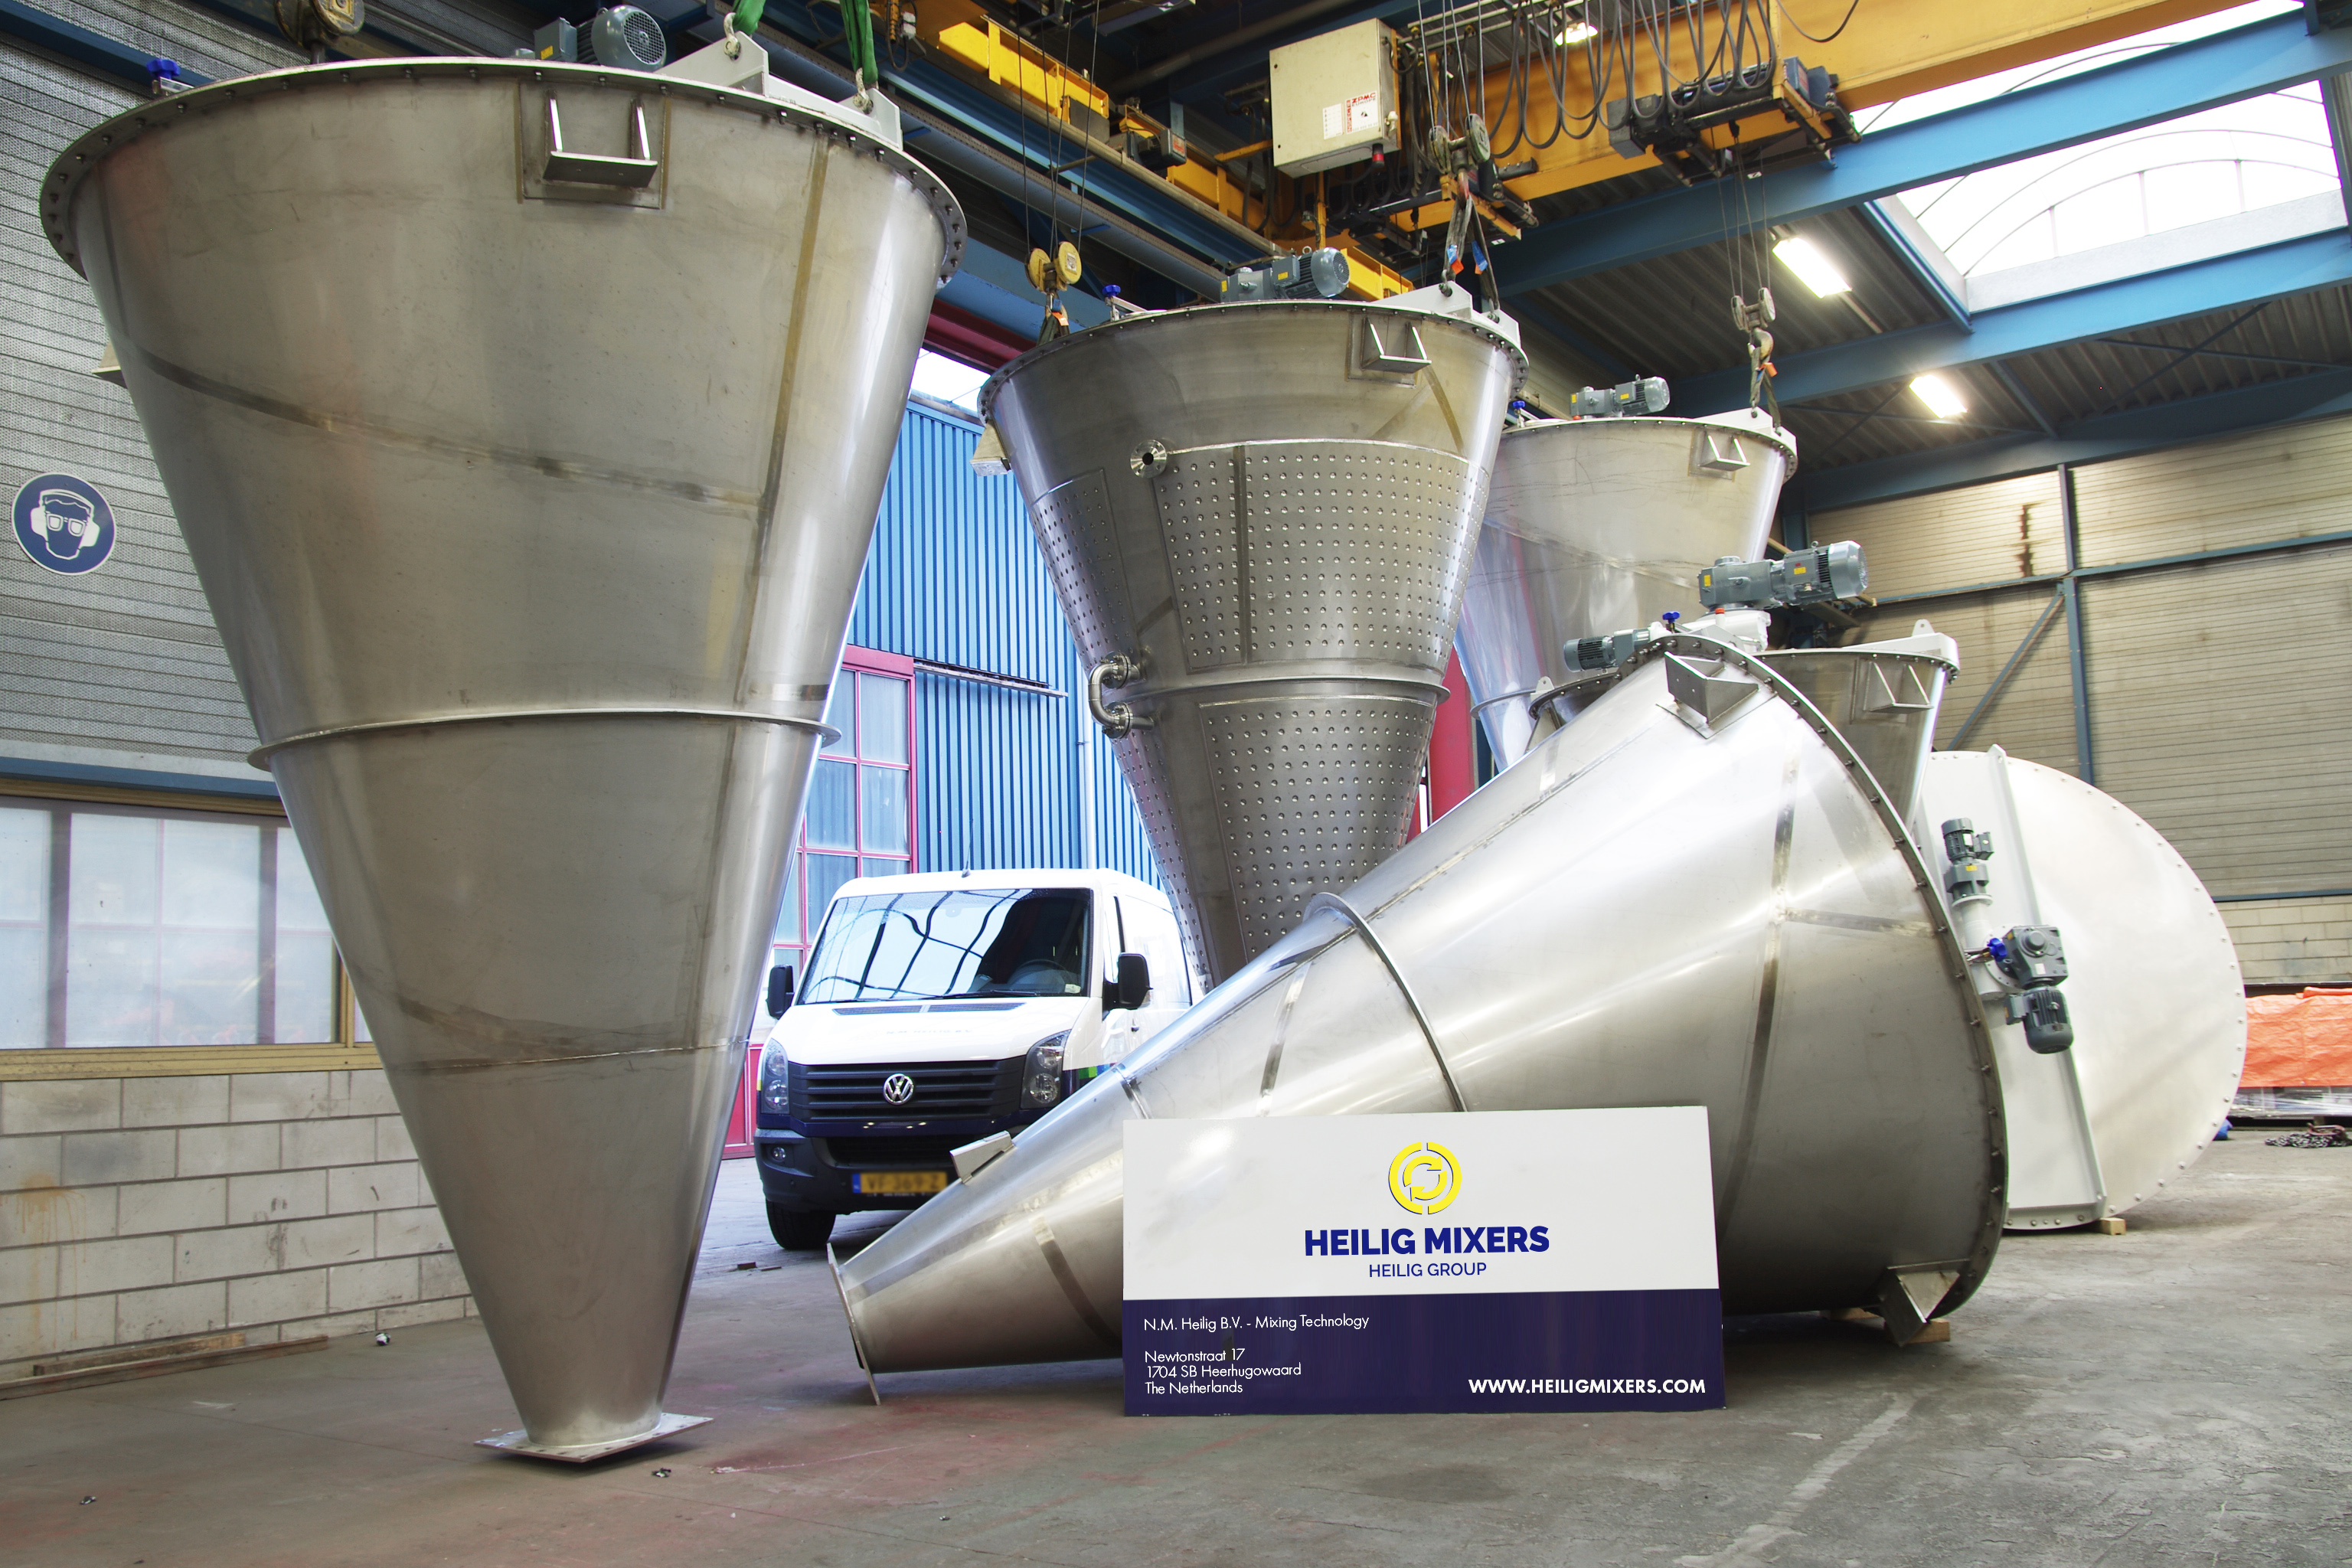 Production industrial mixers